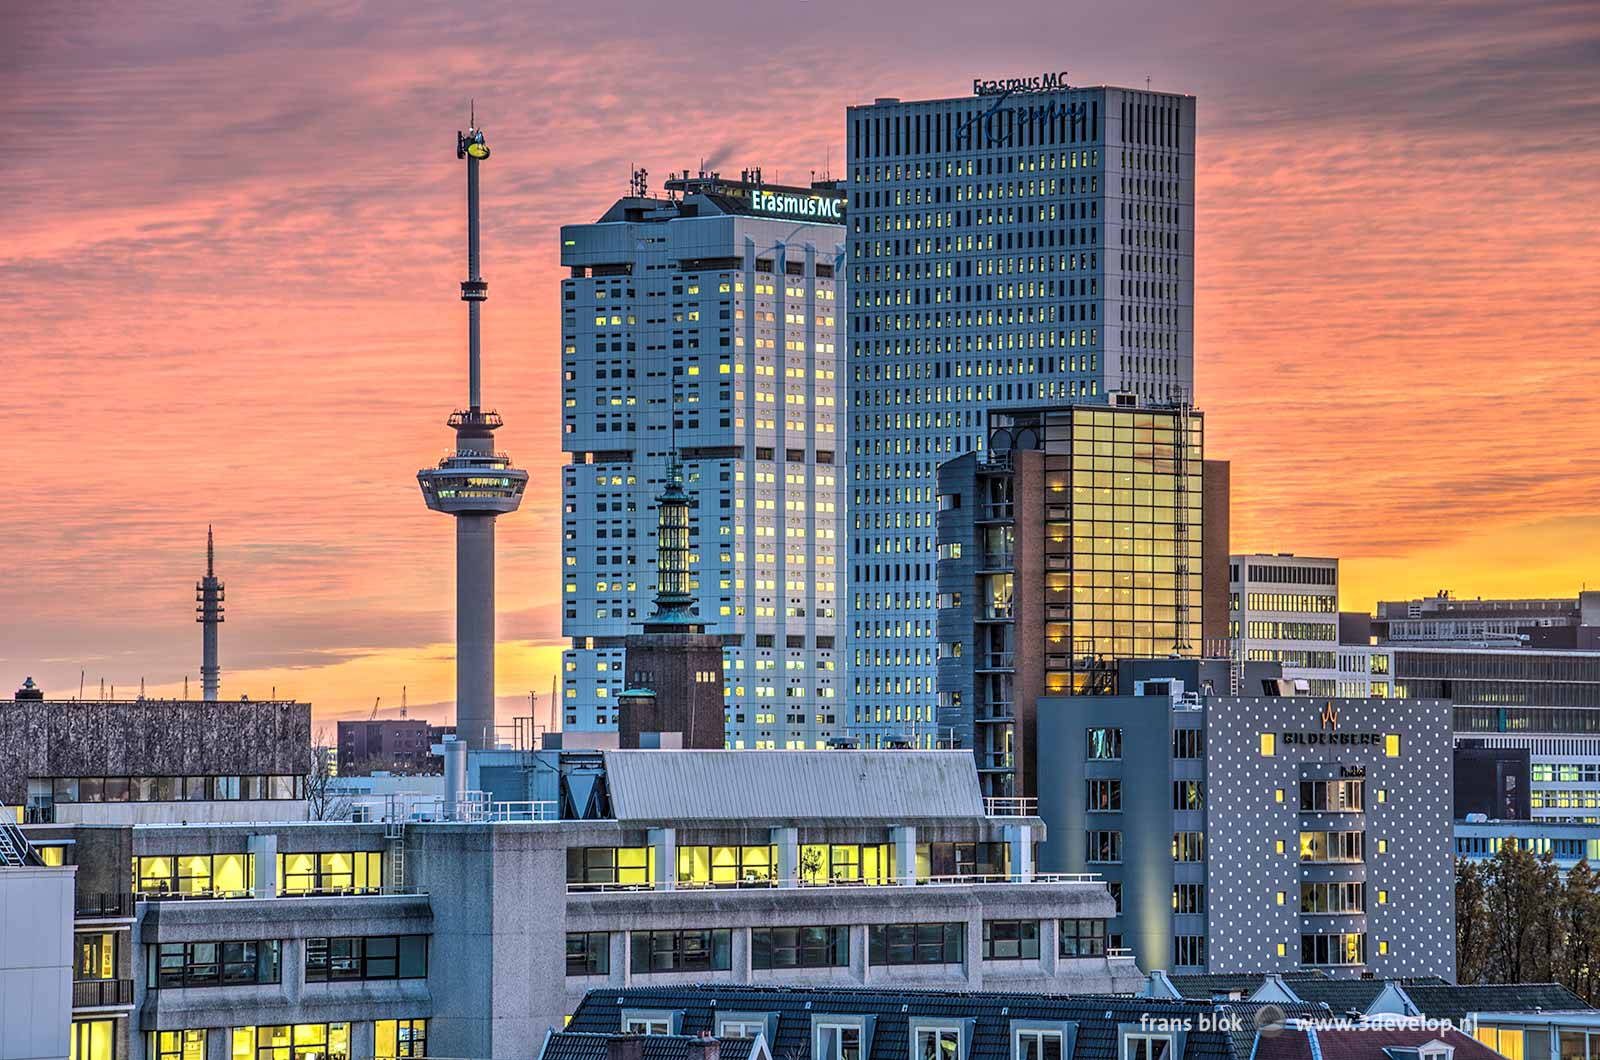 A spectacular sky during a sunset above Rotterdam, featuring Euromast, Parkhotel, Boymans museum and Erasmus MC